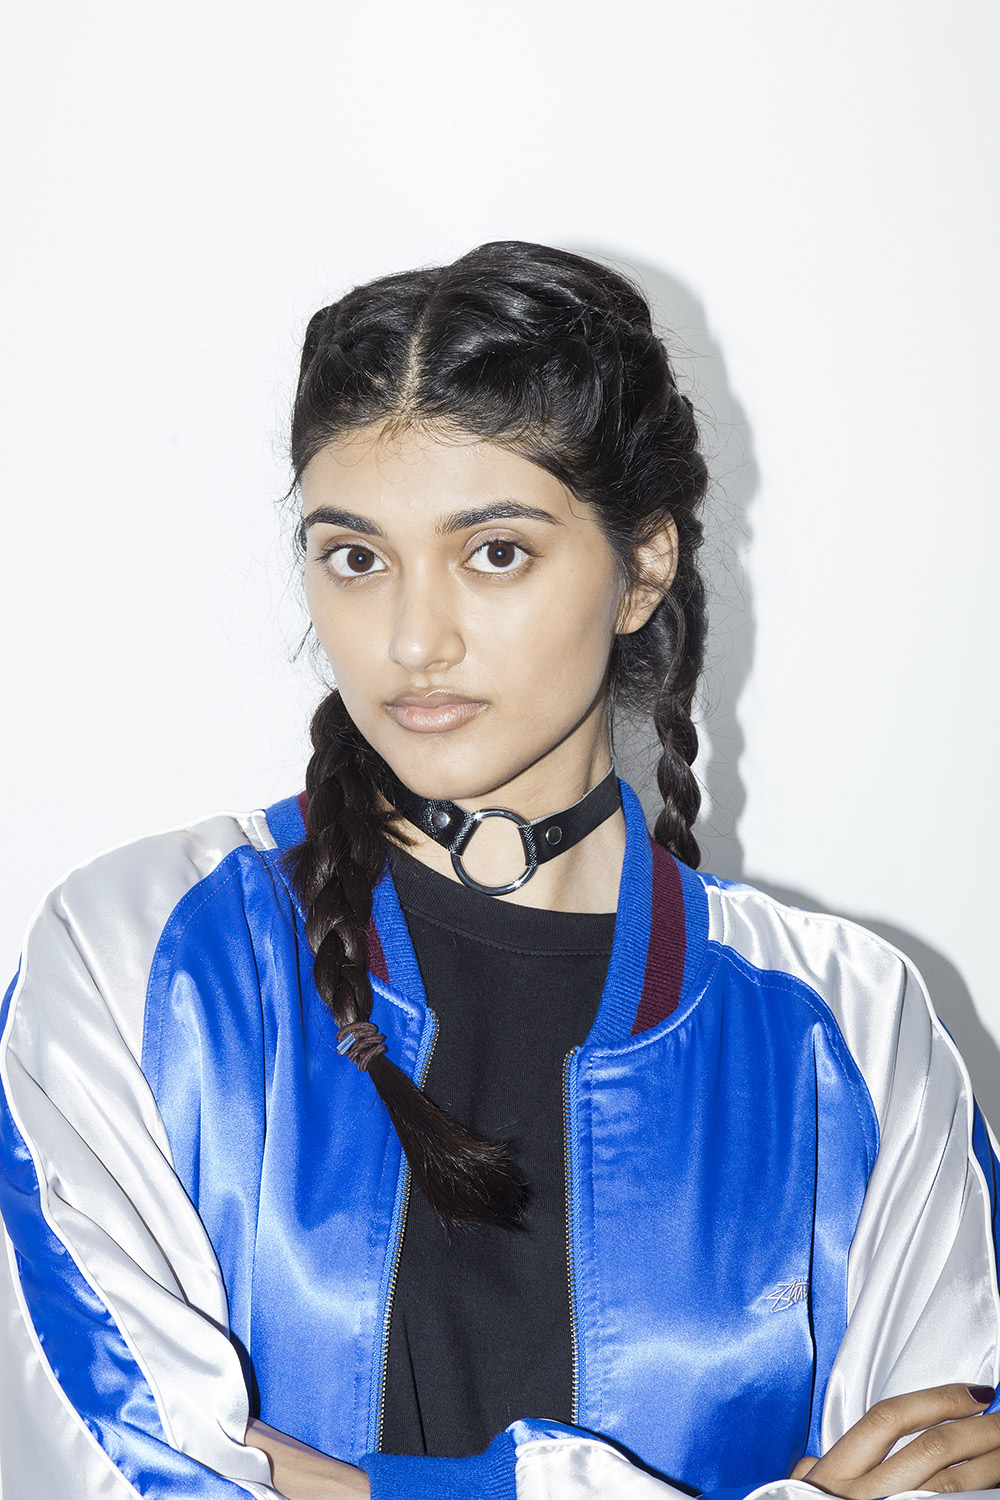 Neelam Gill for Vice UK